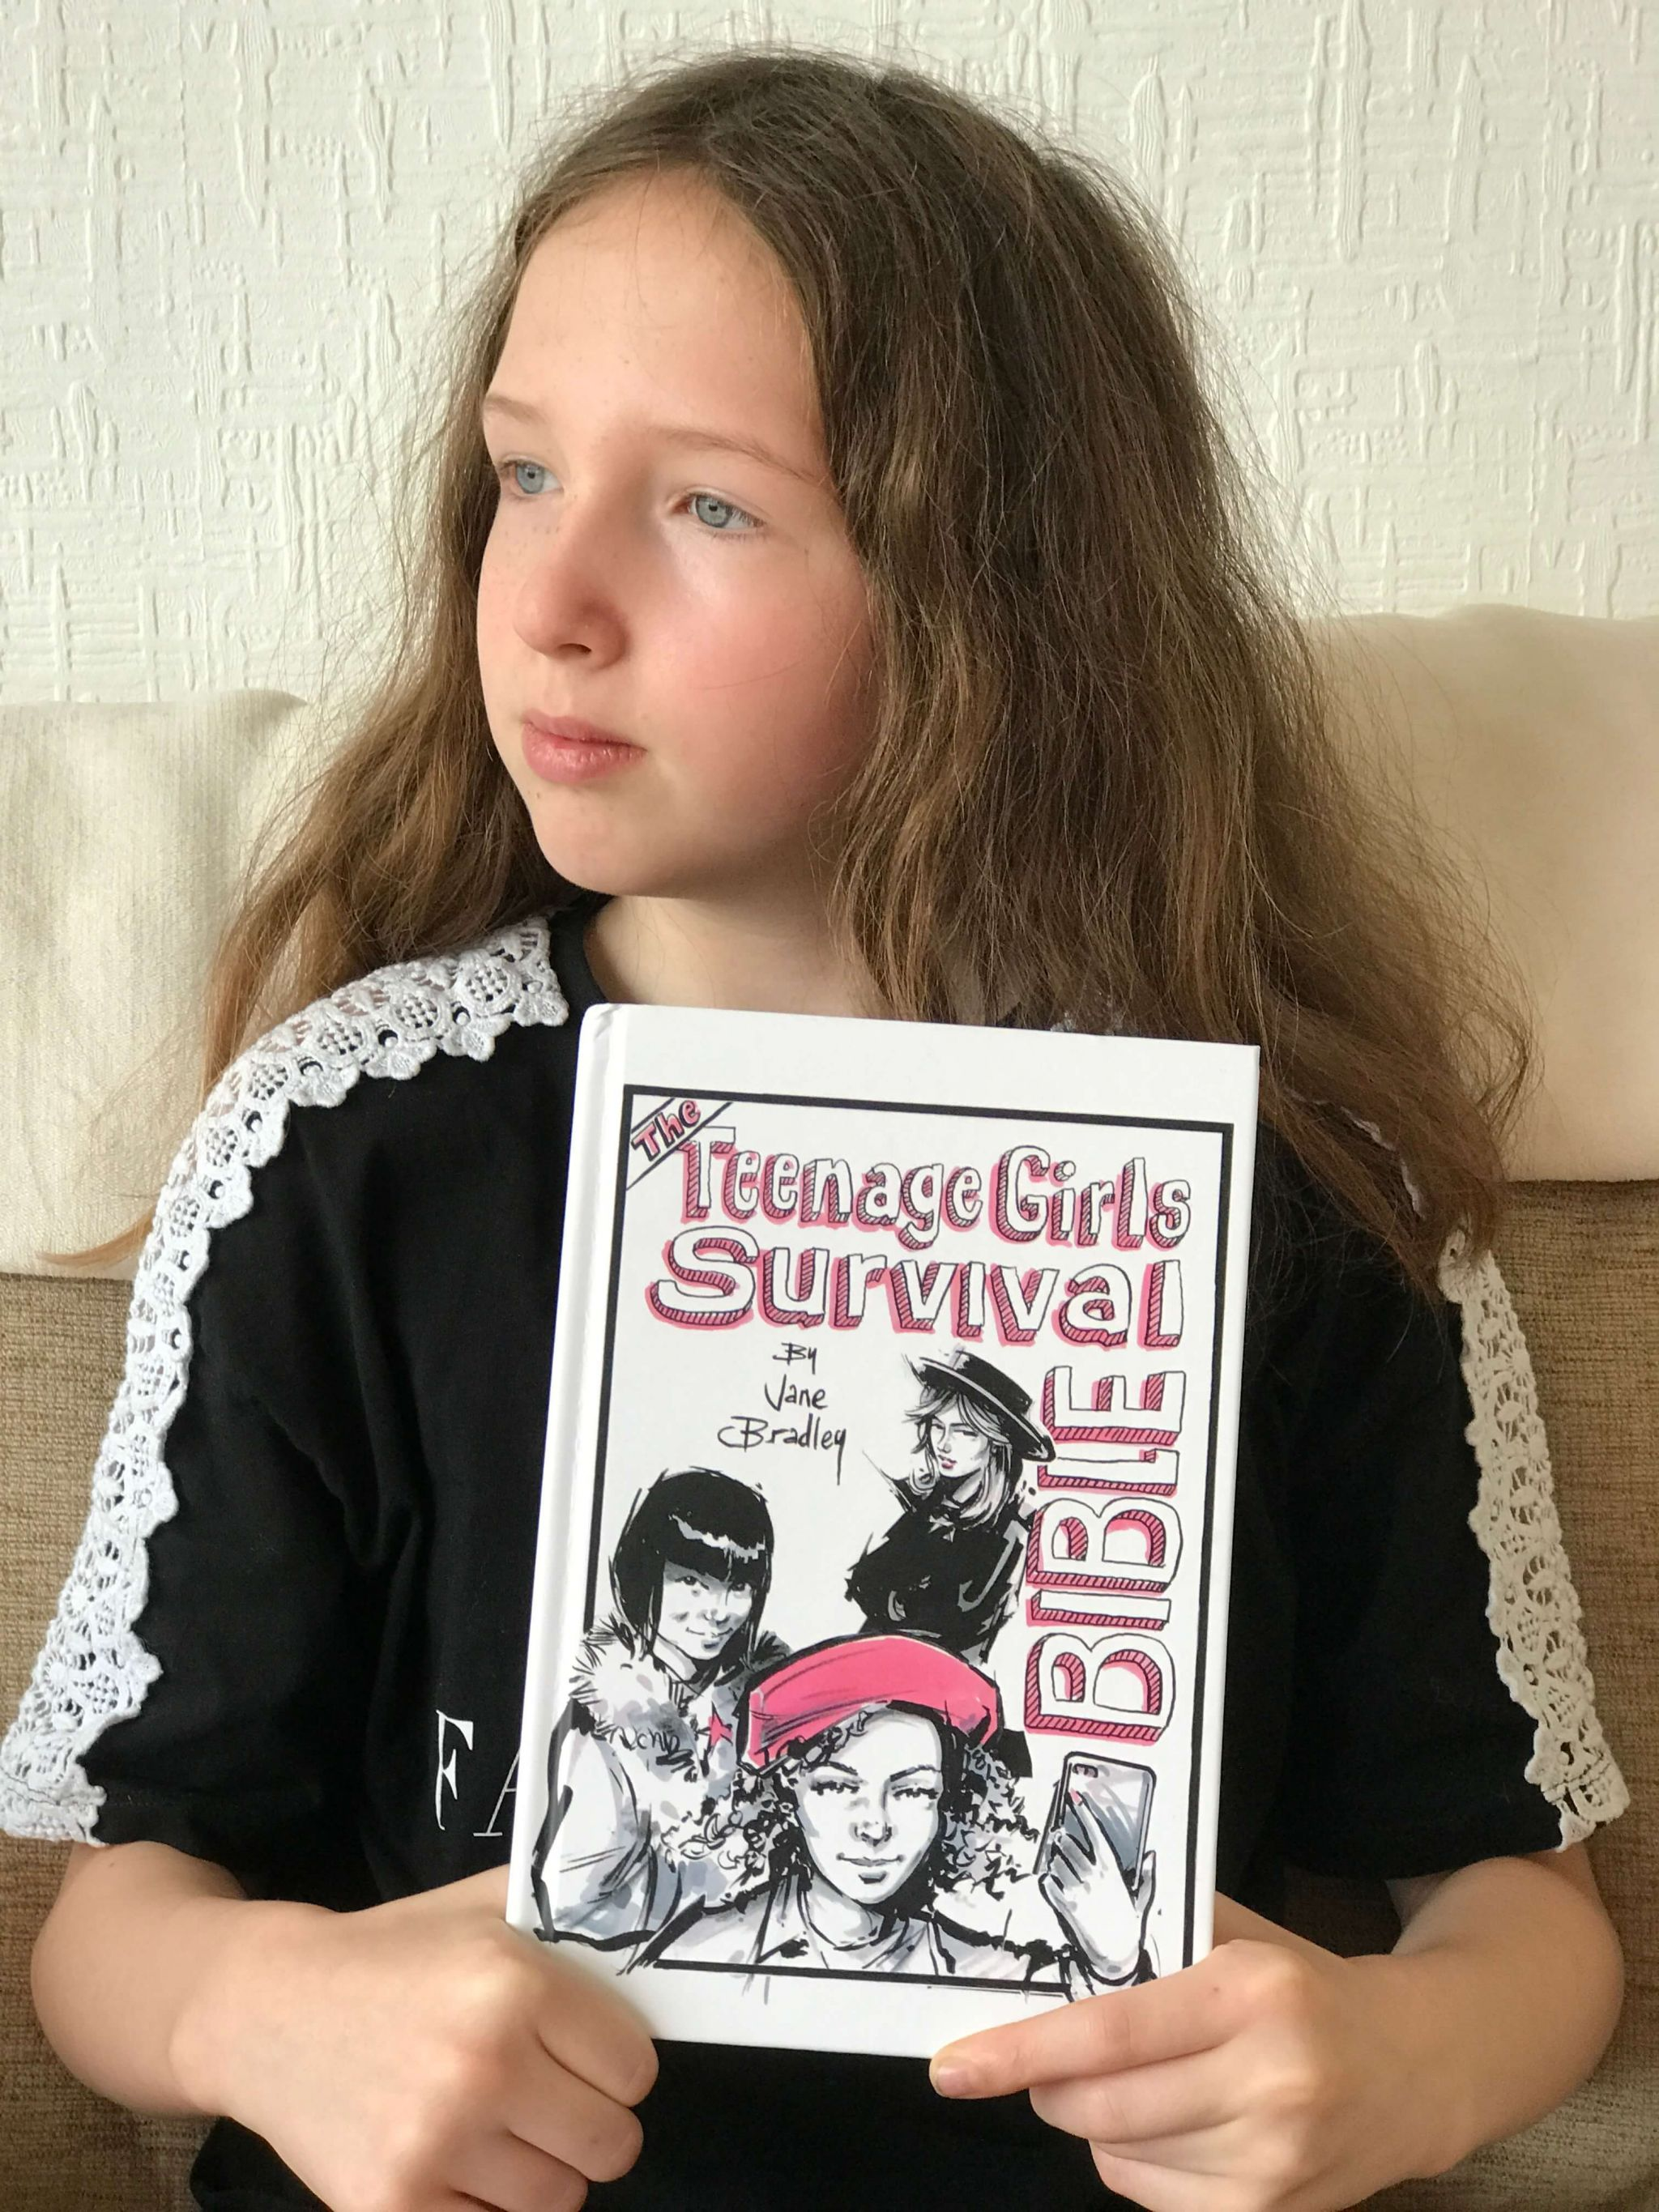 teenage girls issues - Caitlin holding The Teenage Girls Survival Bible book